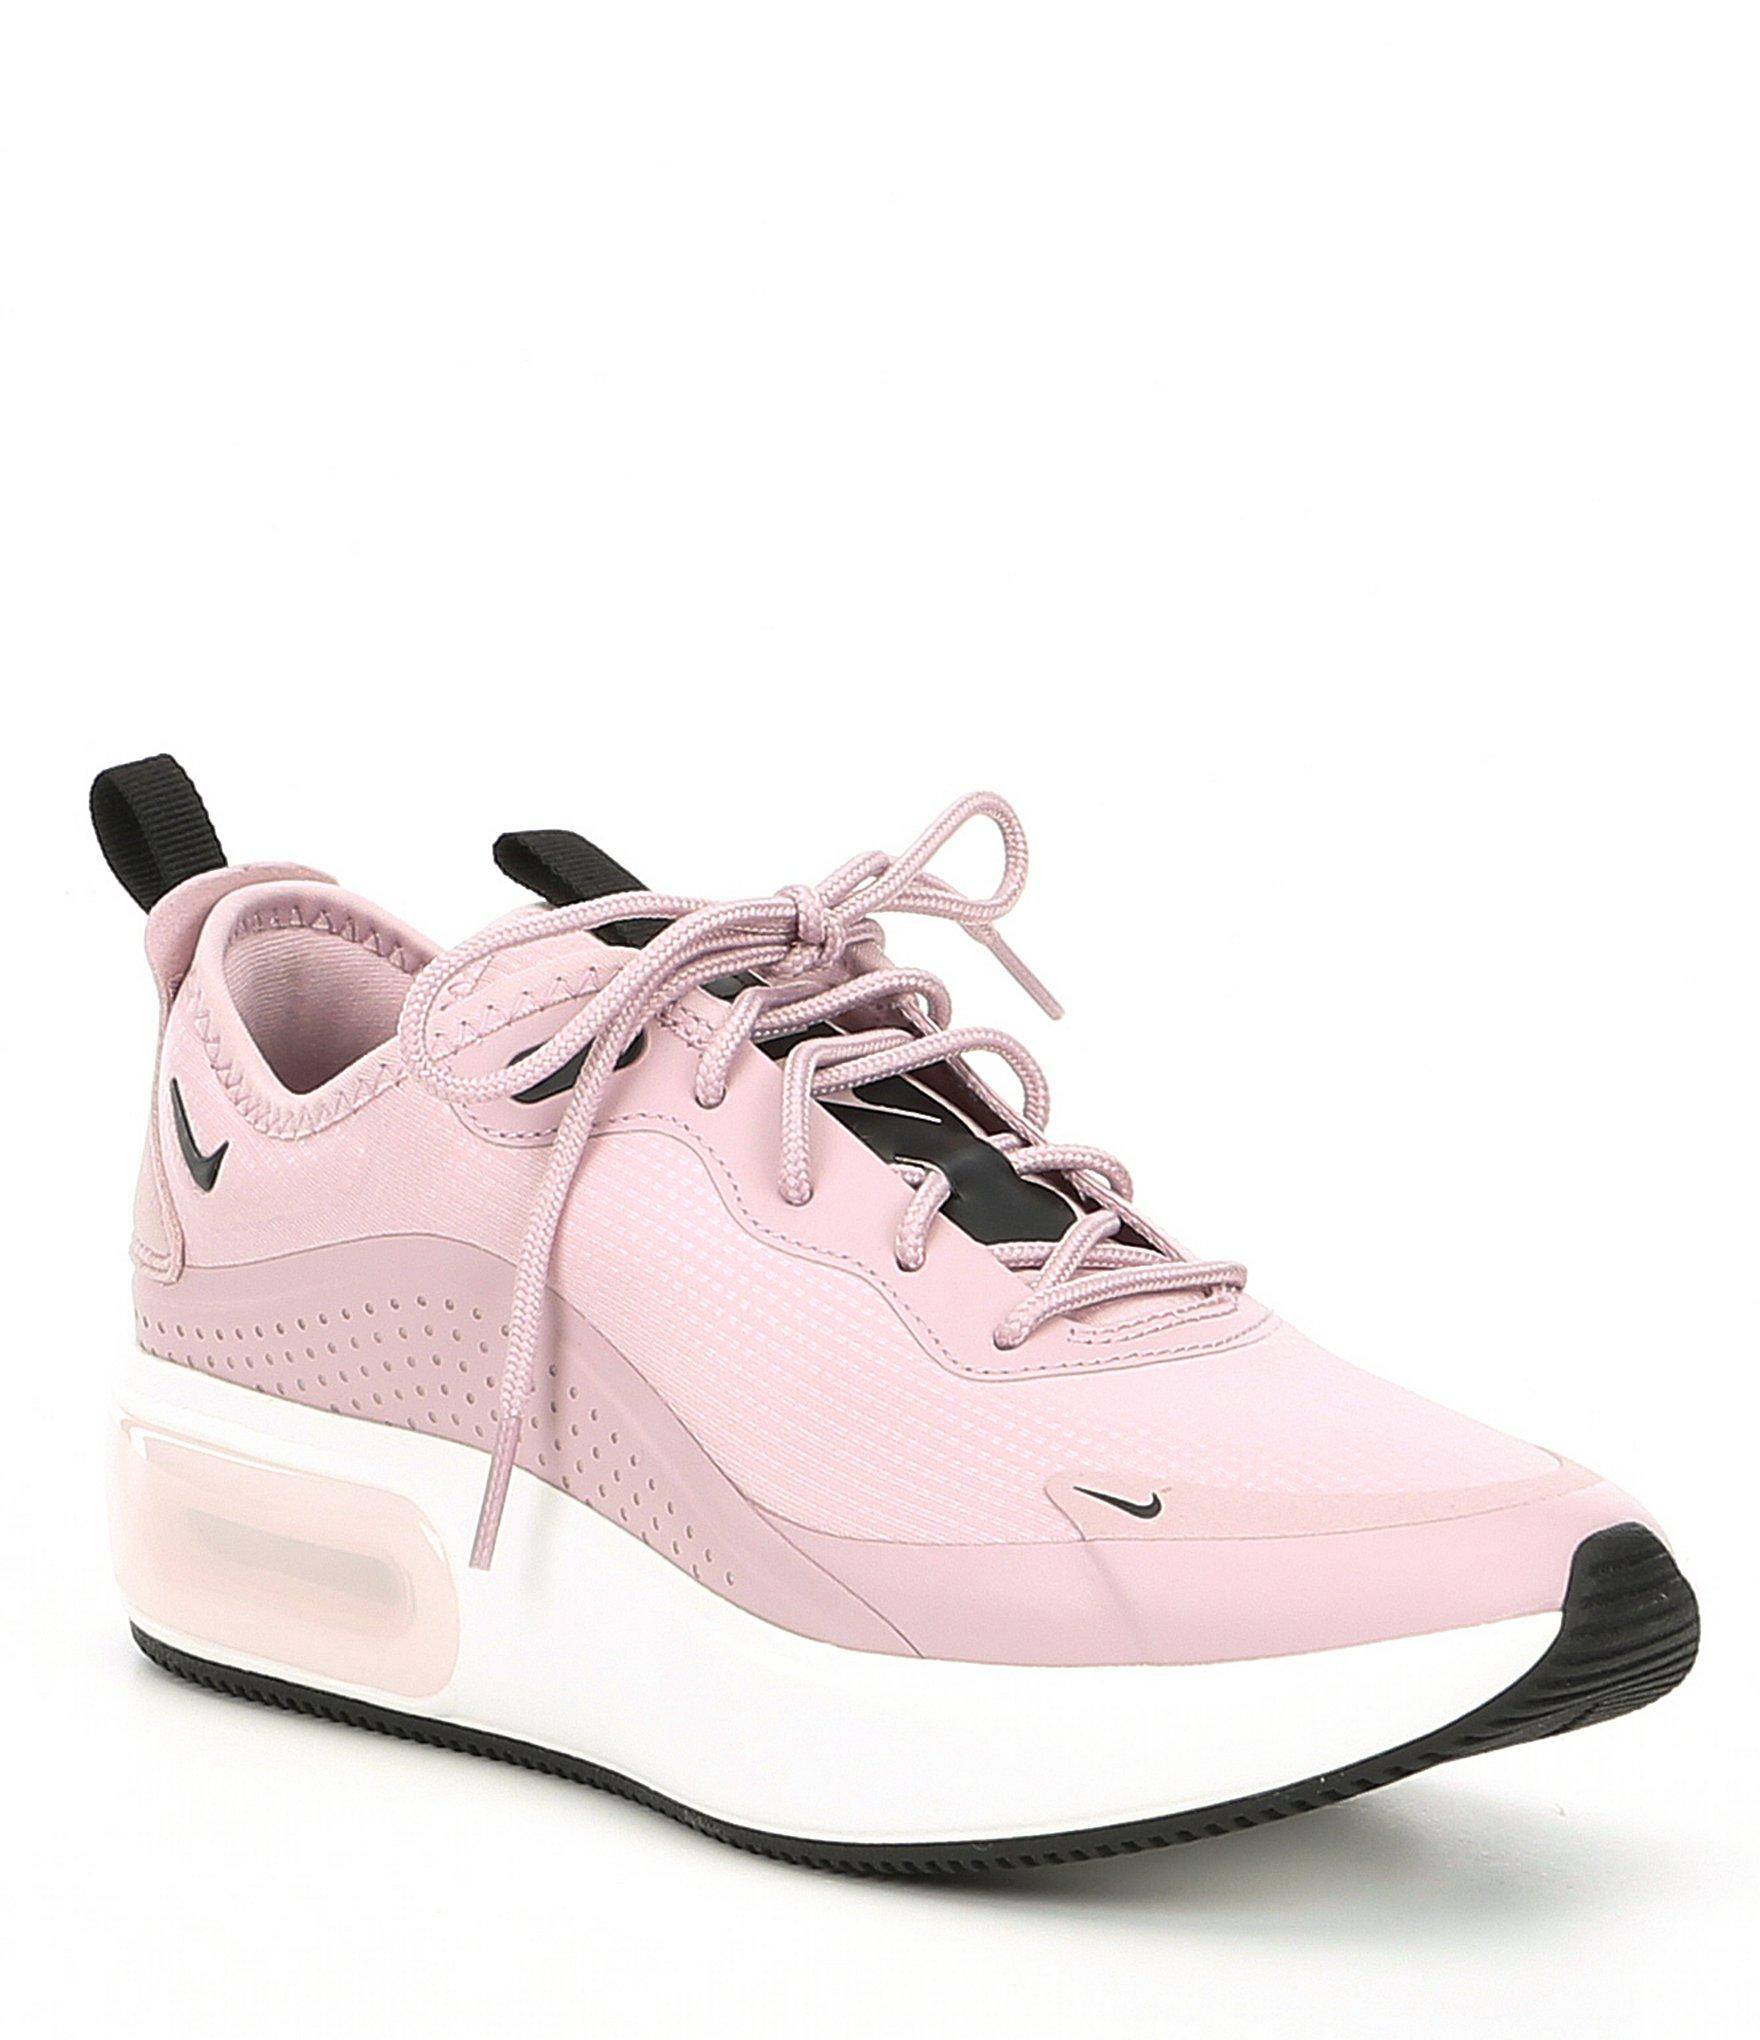 check out 6b9ca 71adf Nike Women s Air Max Dia Lifestyle Shoe in Pink - Lyst